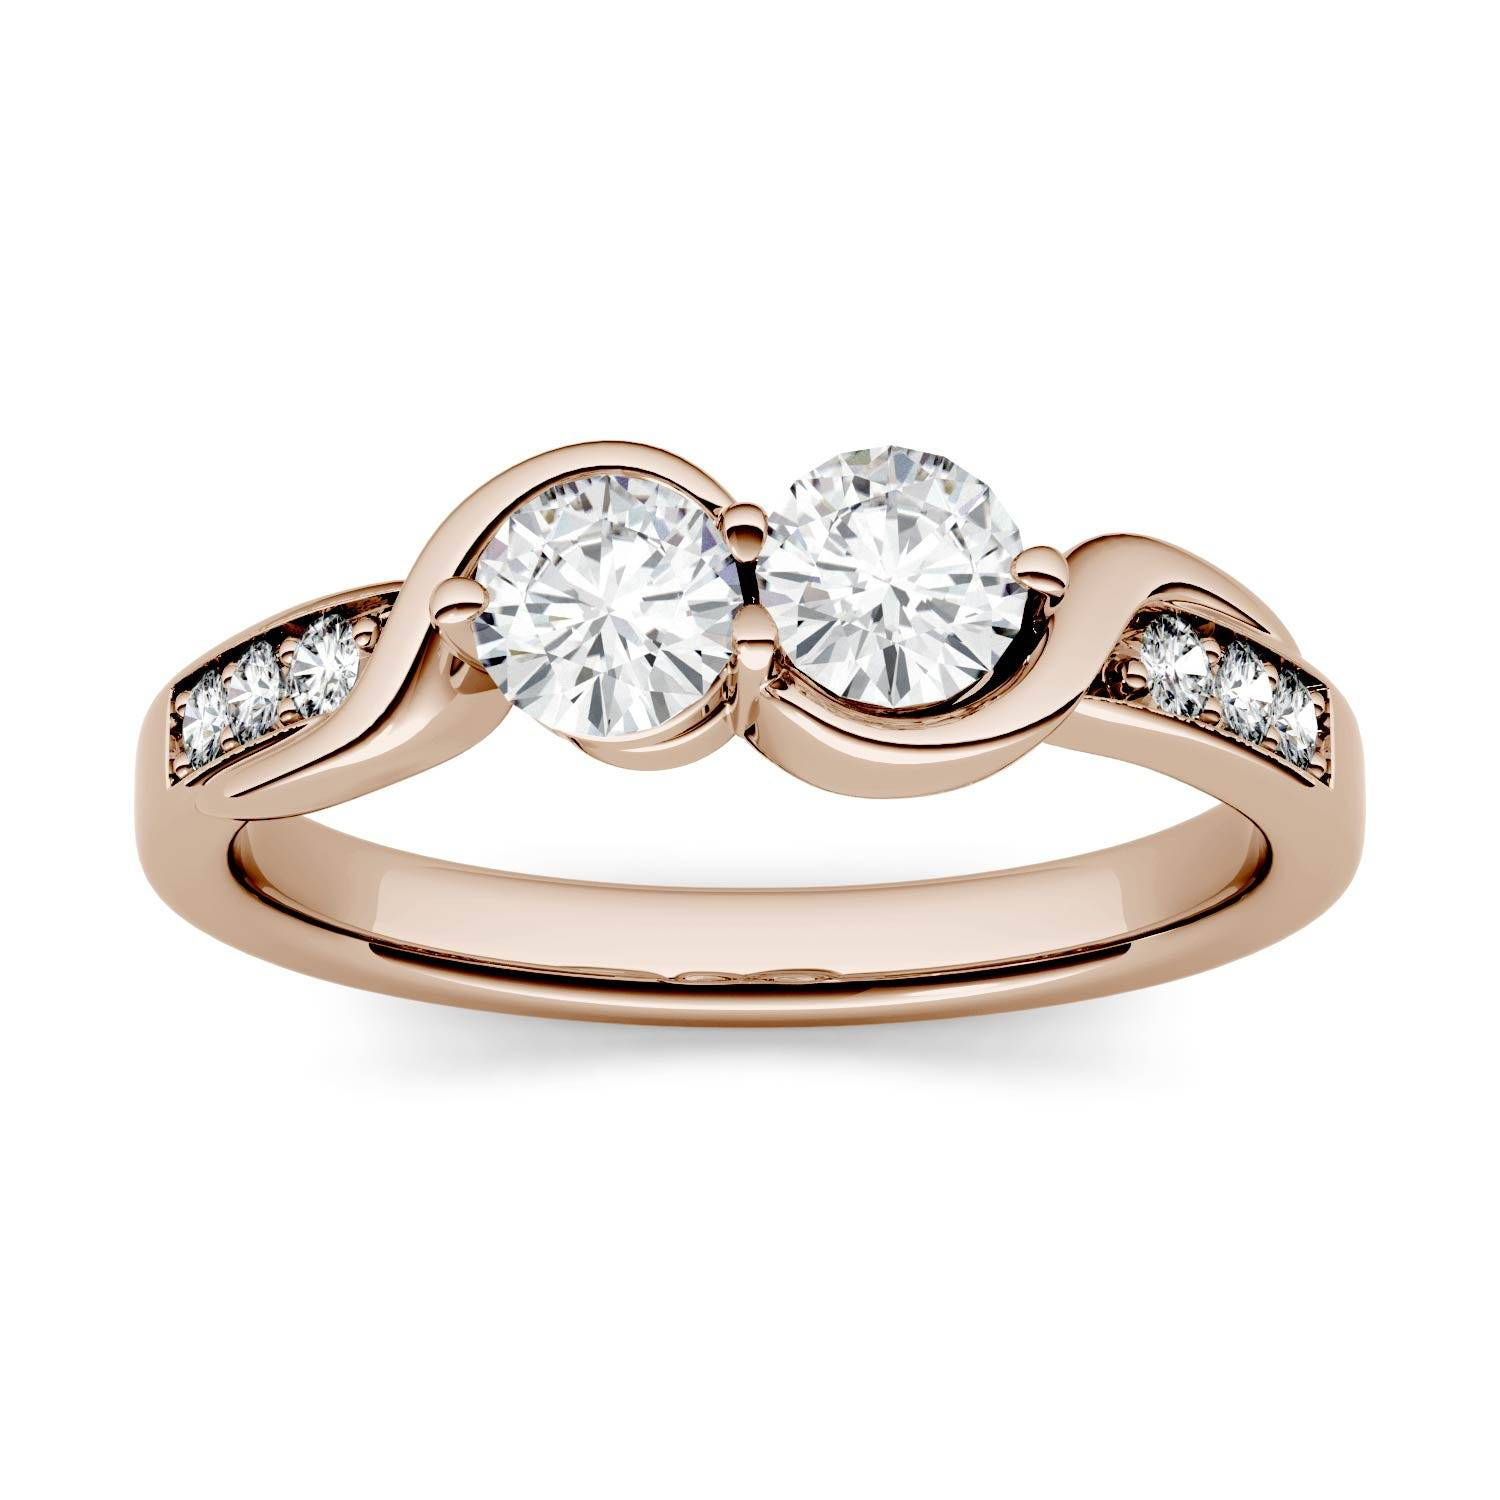 Charles & Colvard Two Stone Swirl with Side Accents Wedding Ring in 14K Rose Gold, Size: 5, 1.12CTW Round Forever One - Colorless Moissanite Charles & Colvard  - Rose Gold - Size: 5